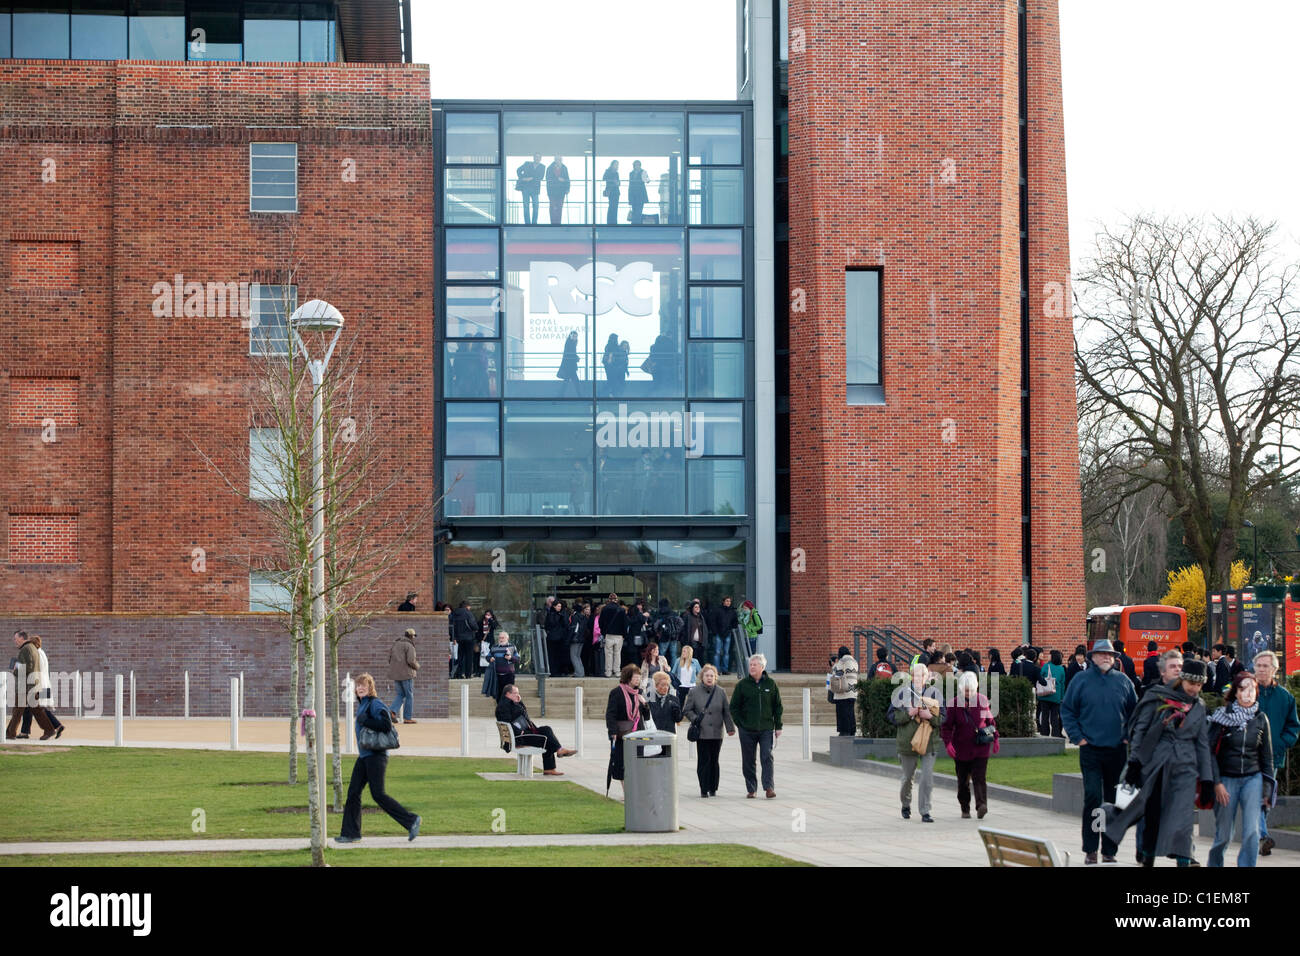 The newly re-opened Royal Shakespeare Theatre in Stratford-Upon-Avon, UK. - Stock Image